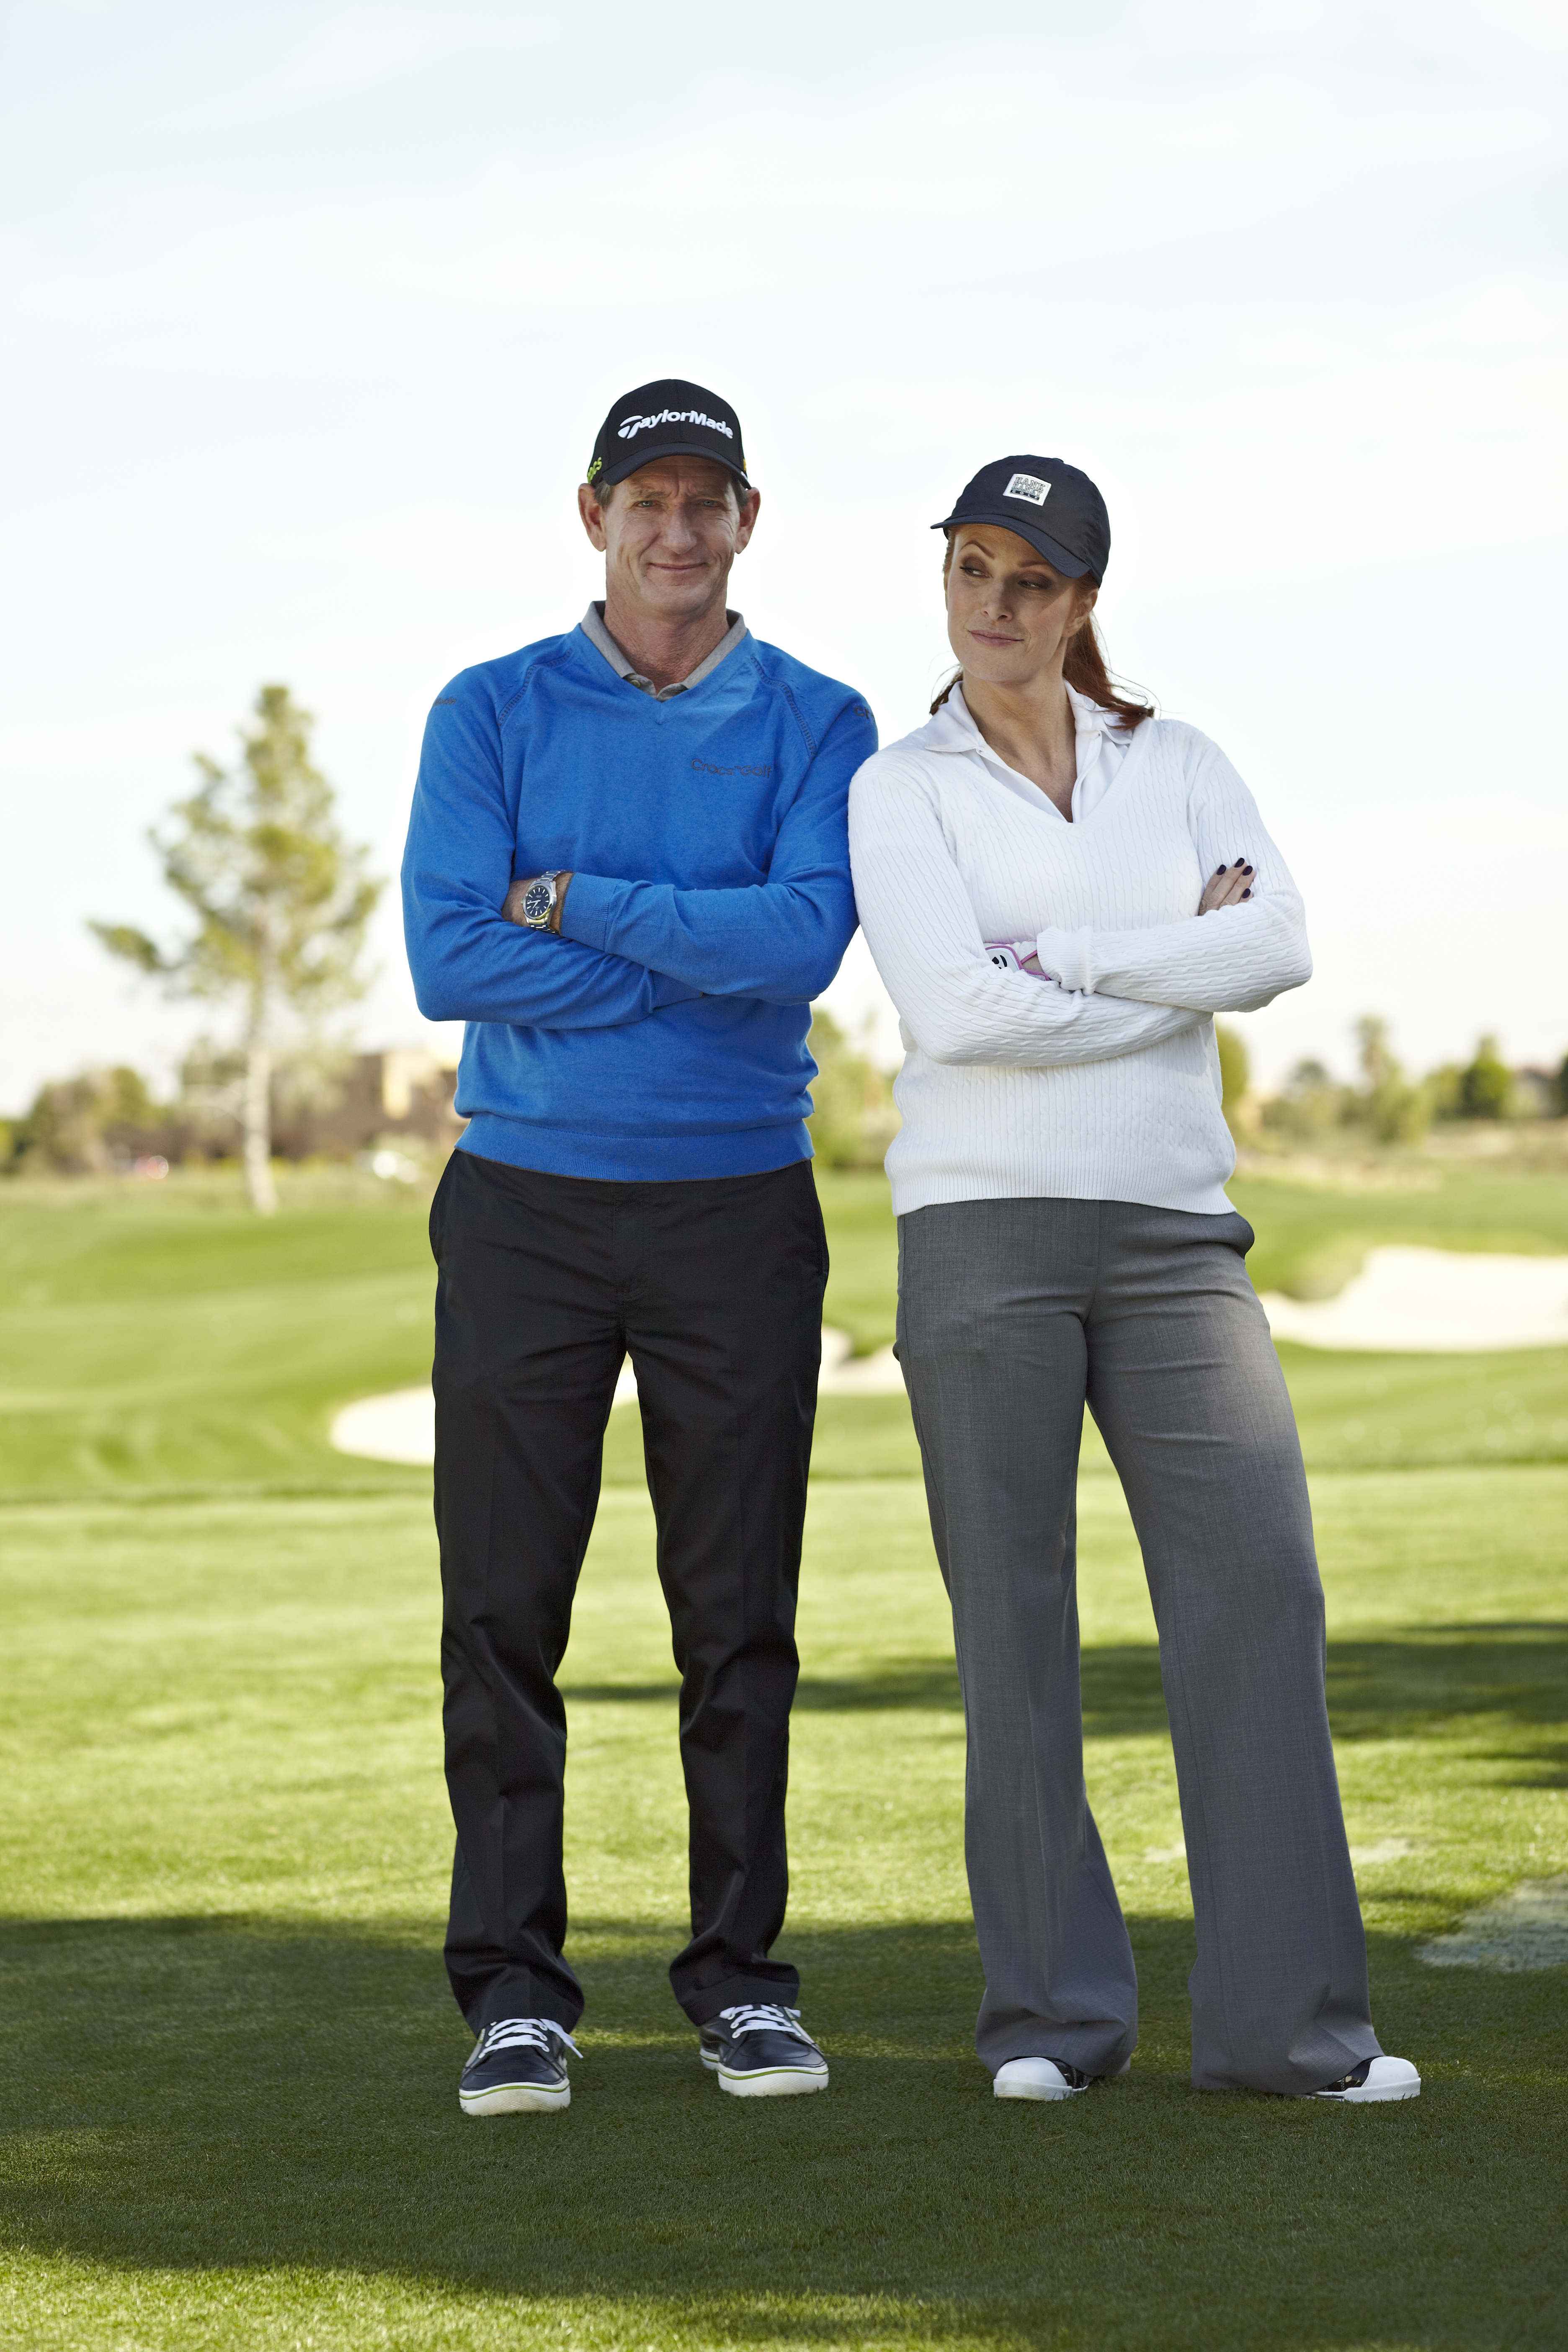 The Haney Project, Hank Haney and Angie Everhart